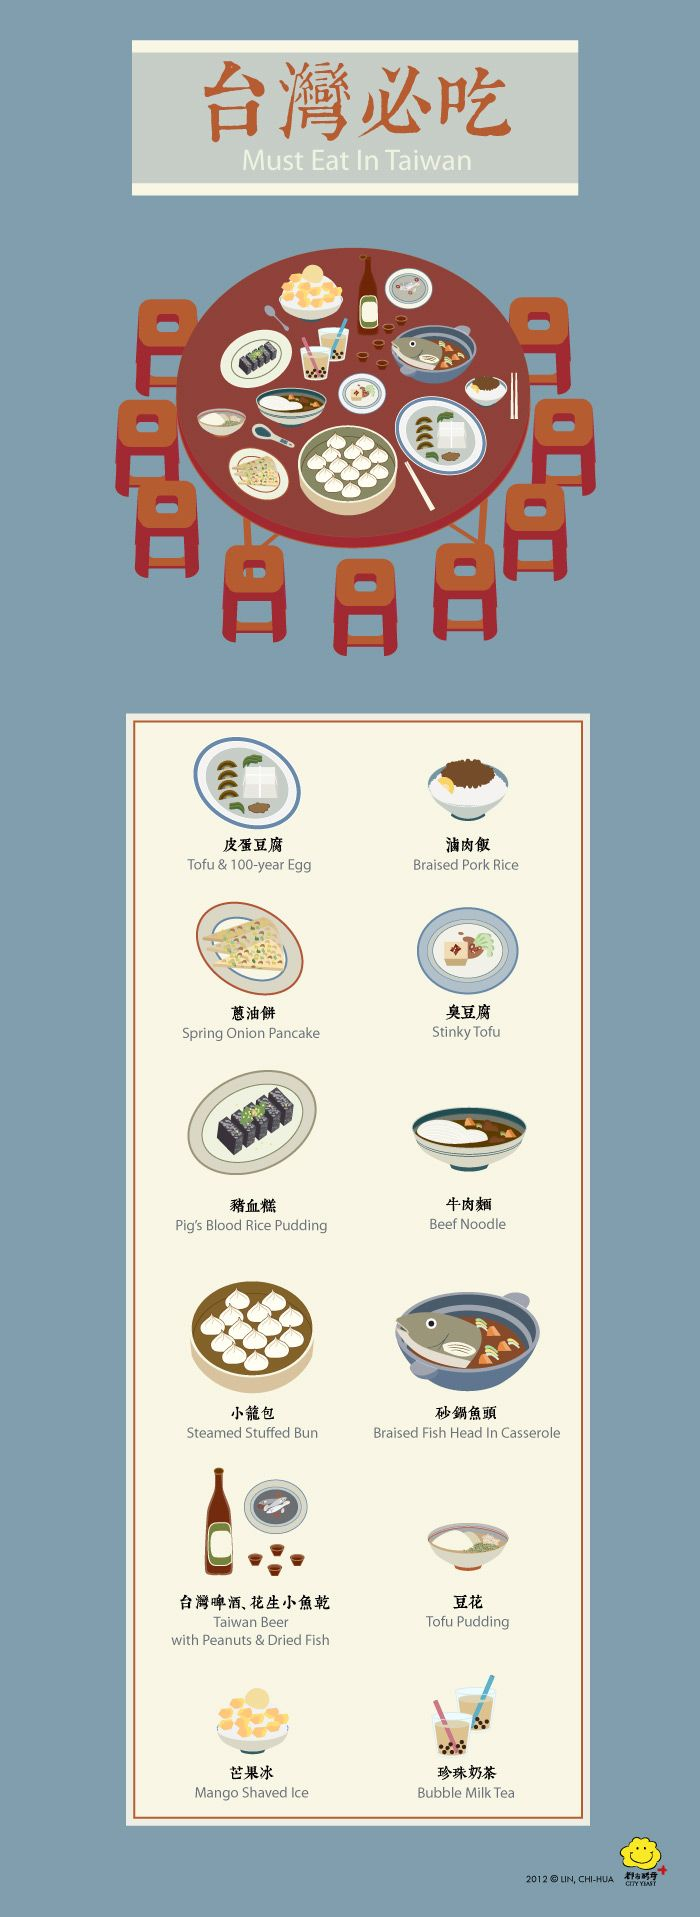 Useful list of all the must-eats!  And more useful---the translations!